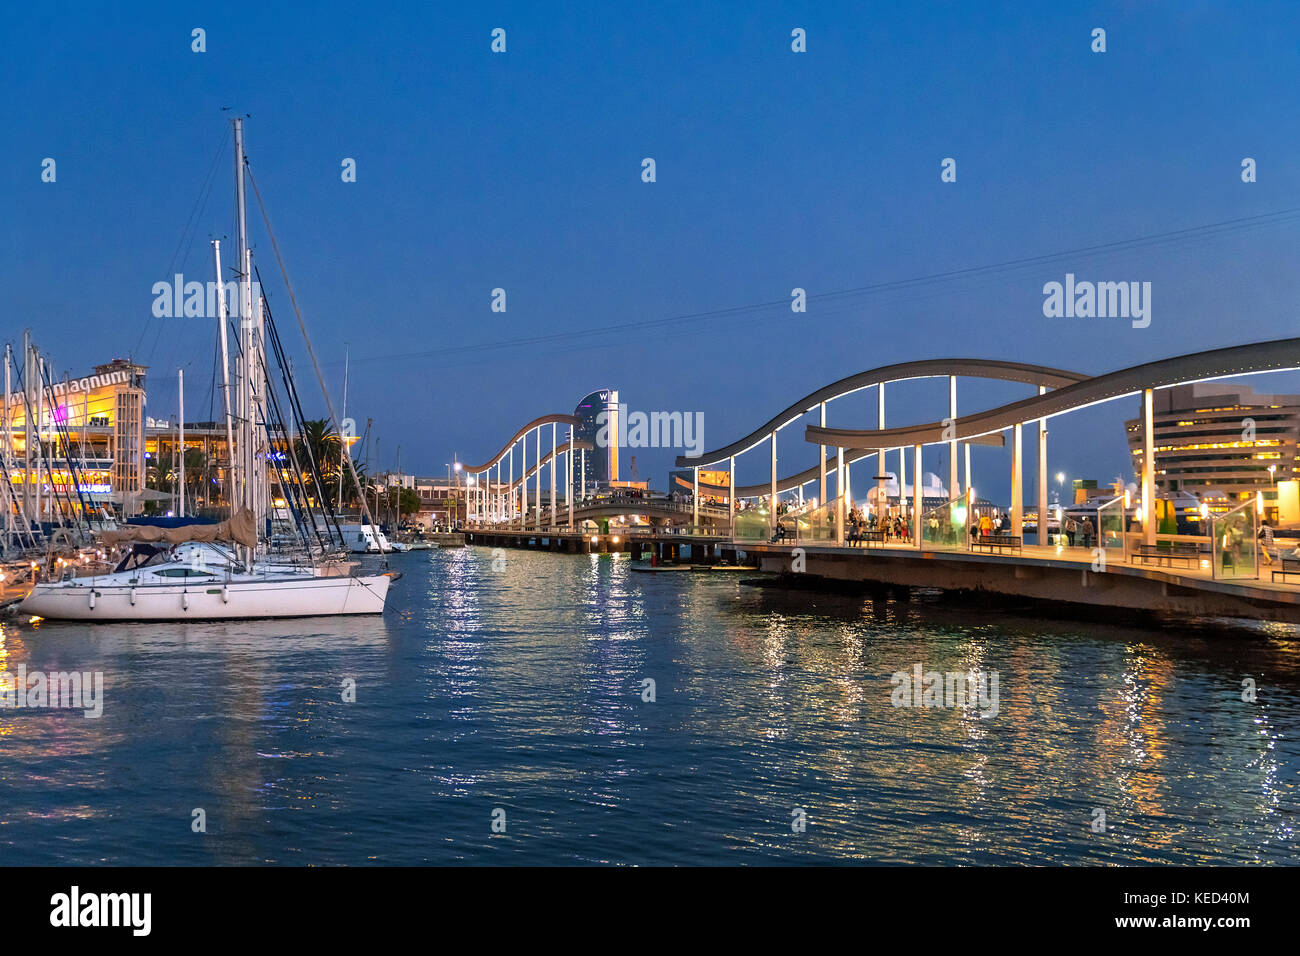 The Rambla de Mar is a walkway over the water, the natural continuation of the Ramblas in Barcelona, Spain. - Stock Image